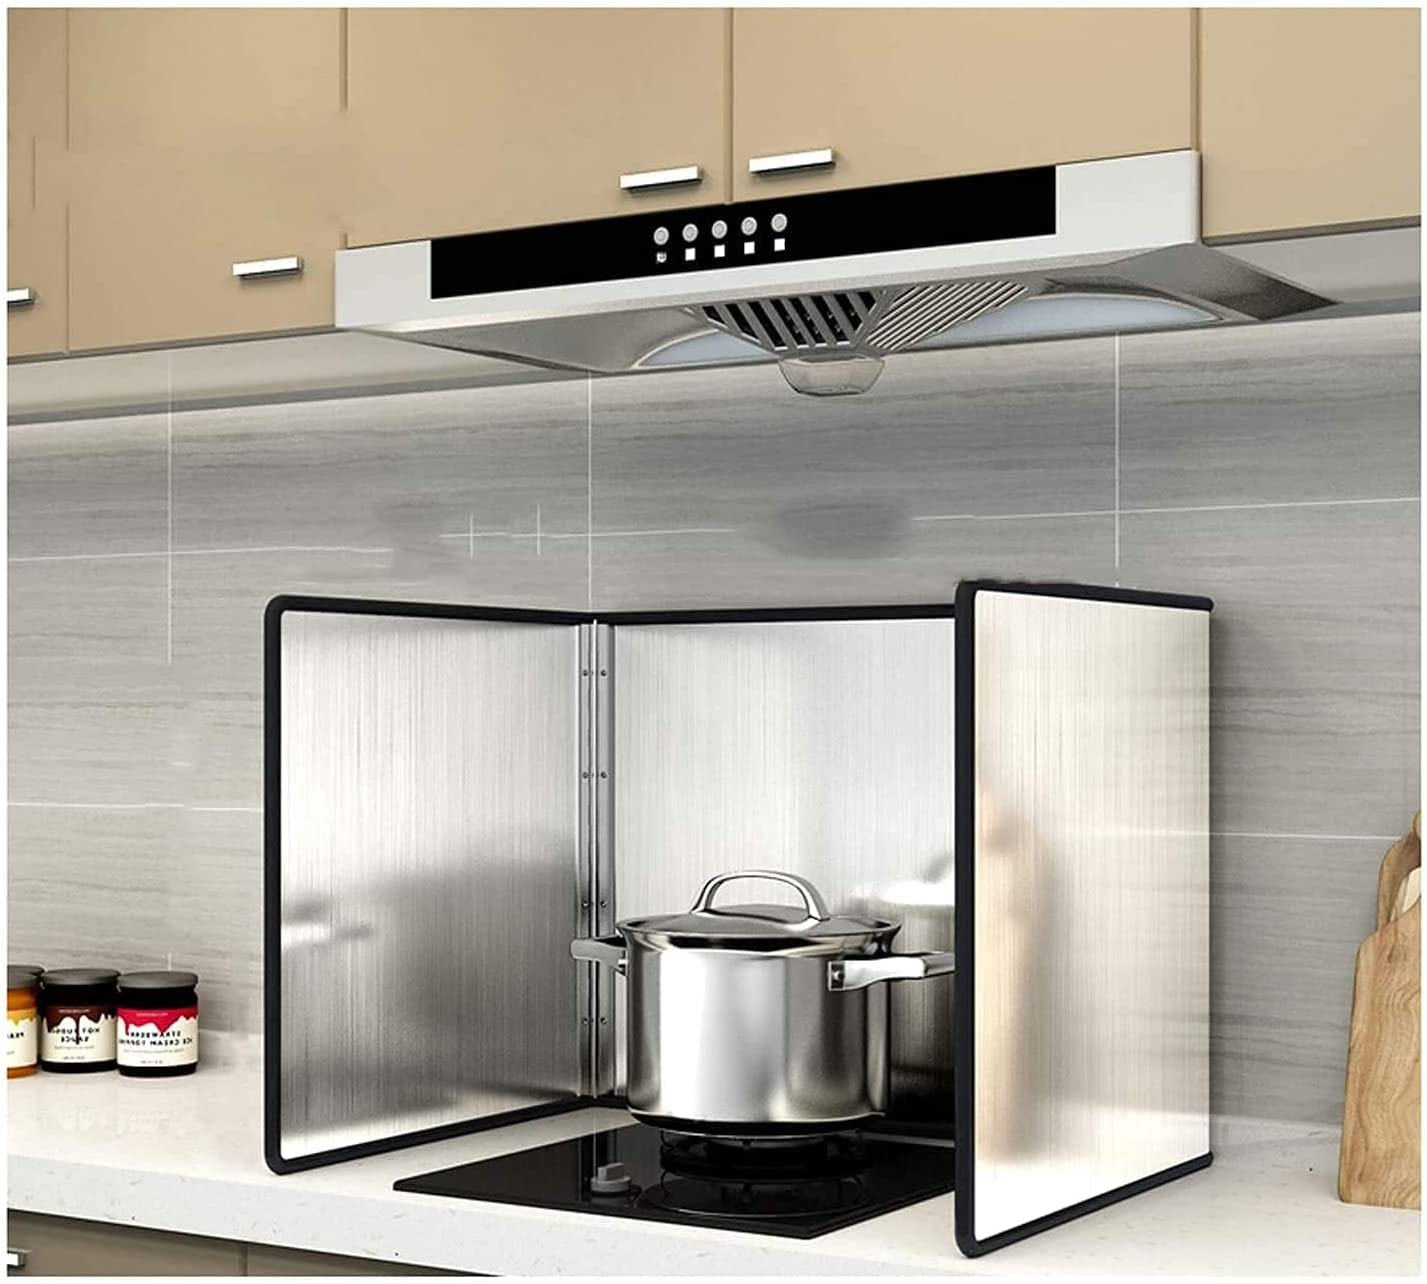 Max 40% OFF FANNISS Splatter guardKitchen Foil Animer and price revision Splat Screens3 Sided